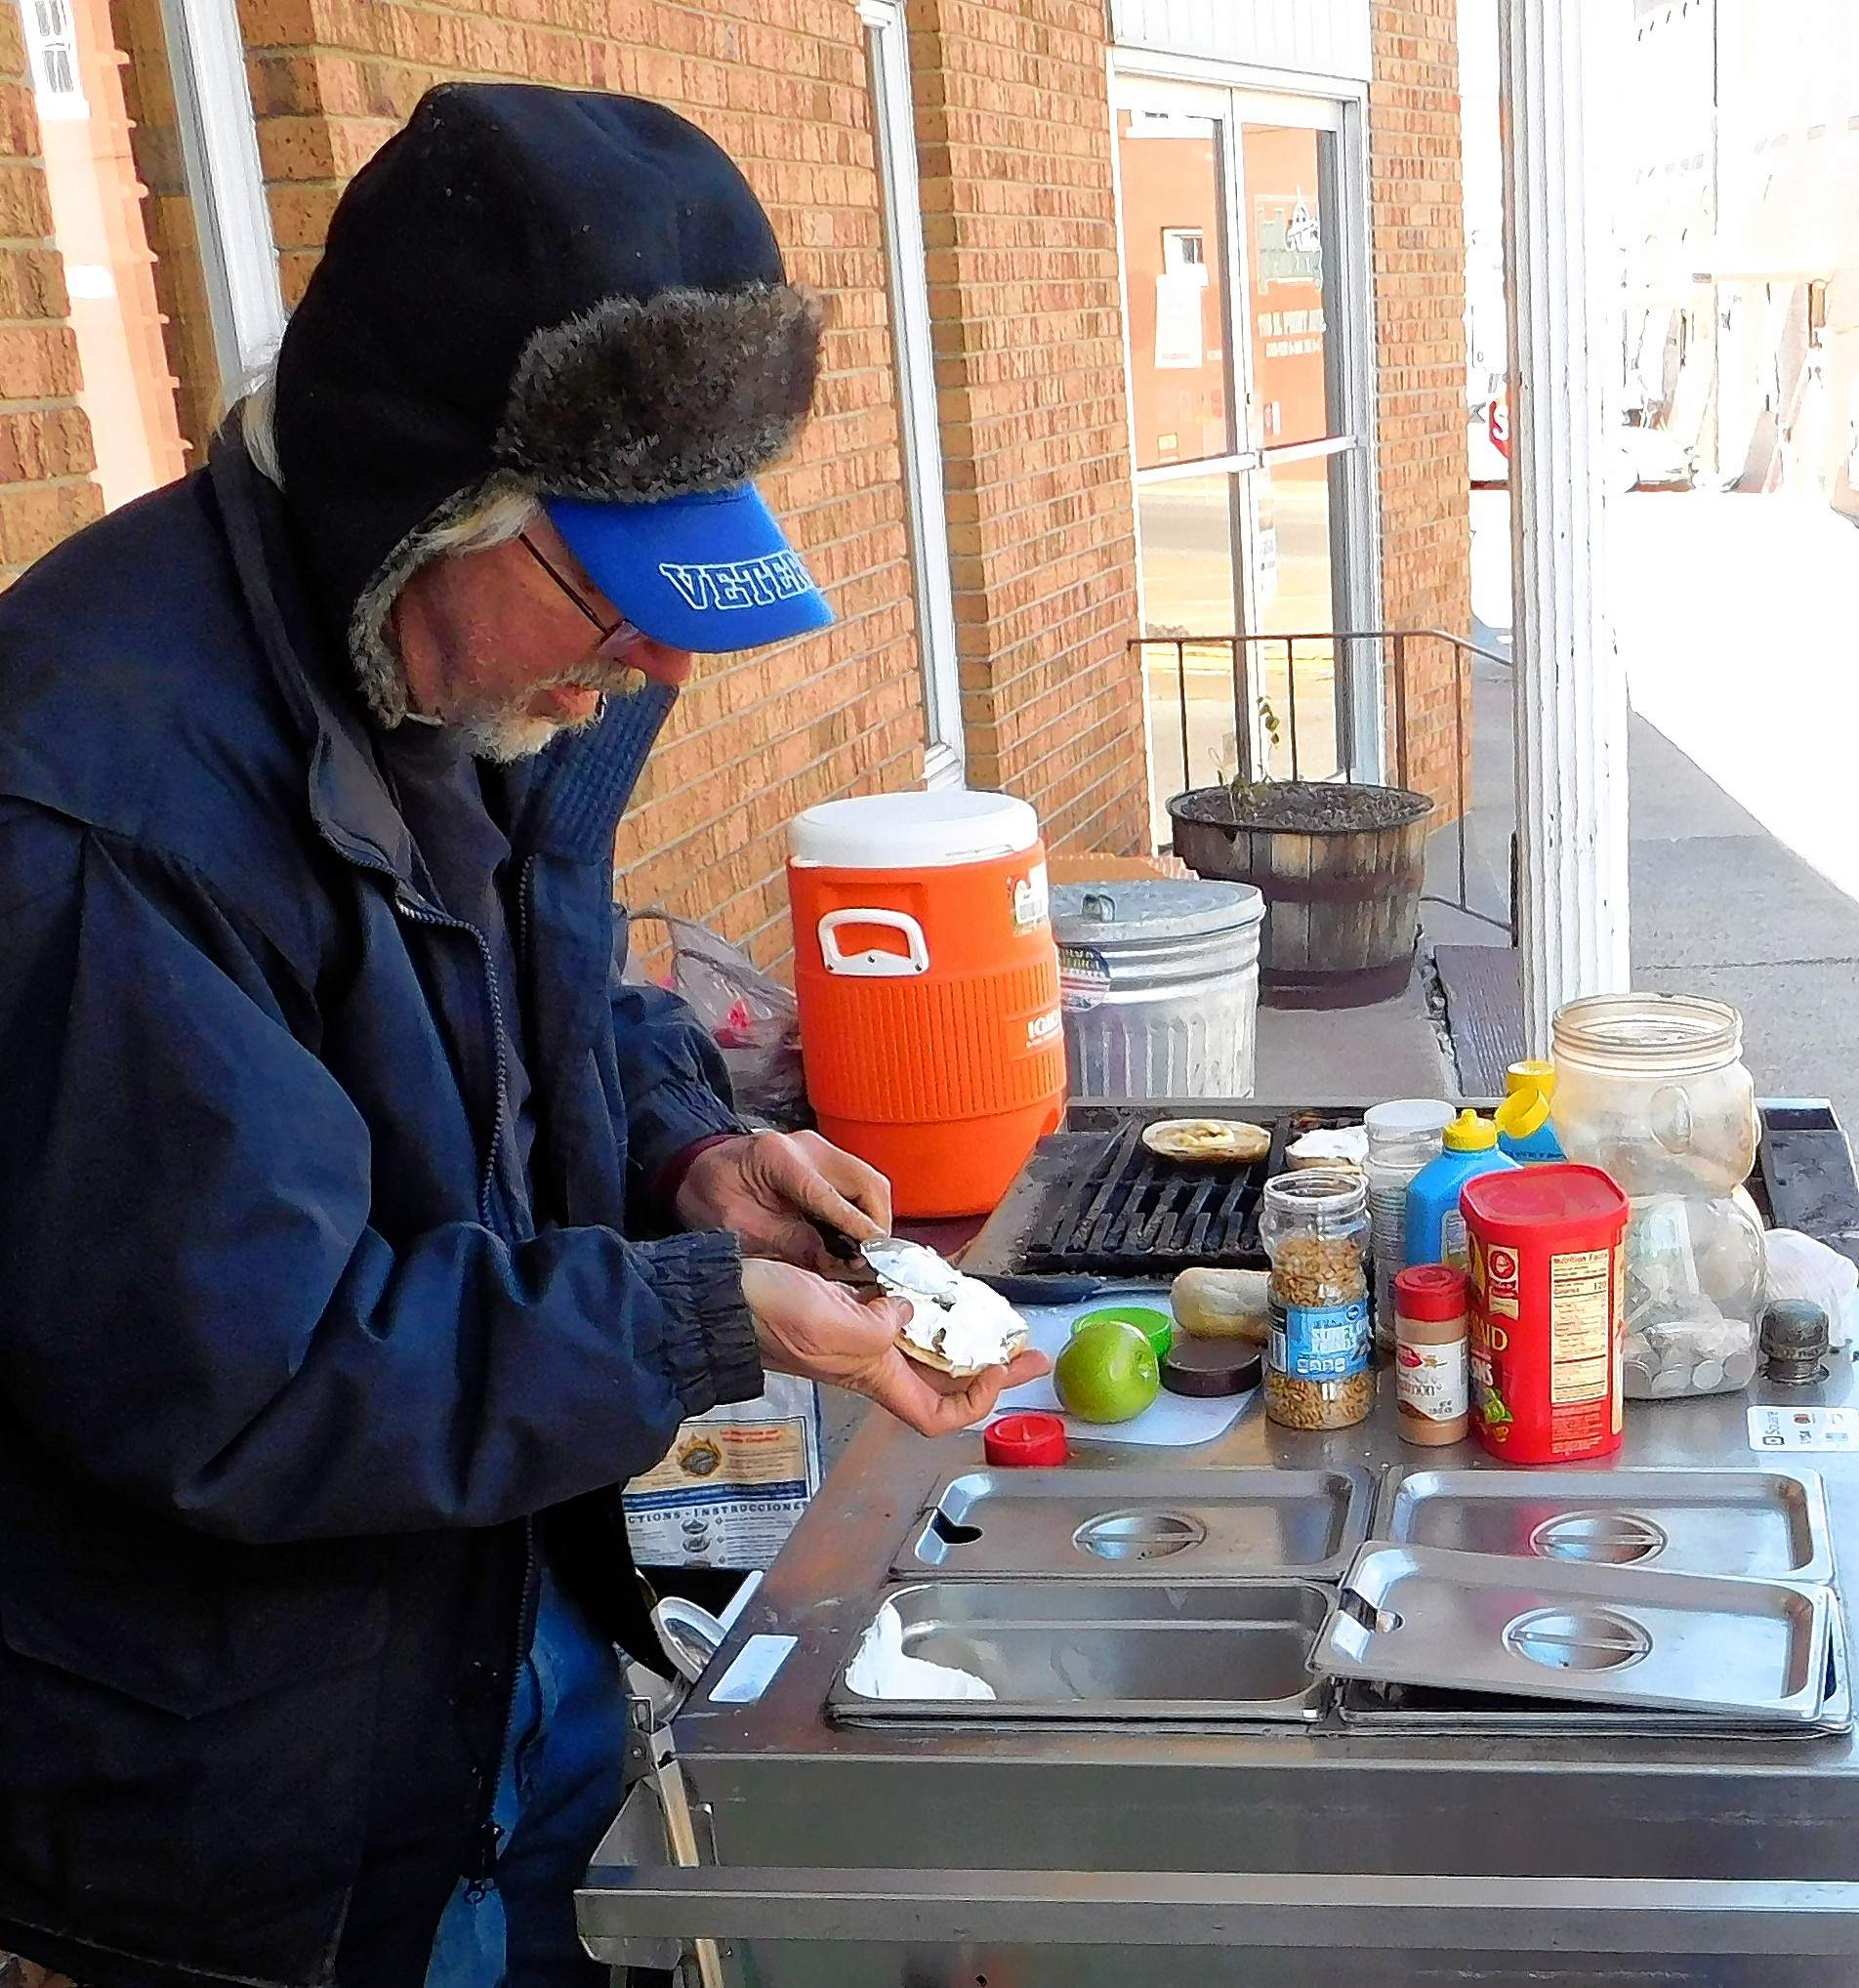 Brad Preiss, or B-Rad, as he prefers to be known, prepares a warm bagel for one of several customers that that trickled in for a treat Thursday. Preiss was set up outside of Marion's Hill Printing at the invitation of owners Rita and Earl Sigley.